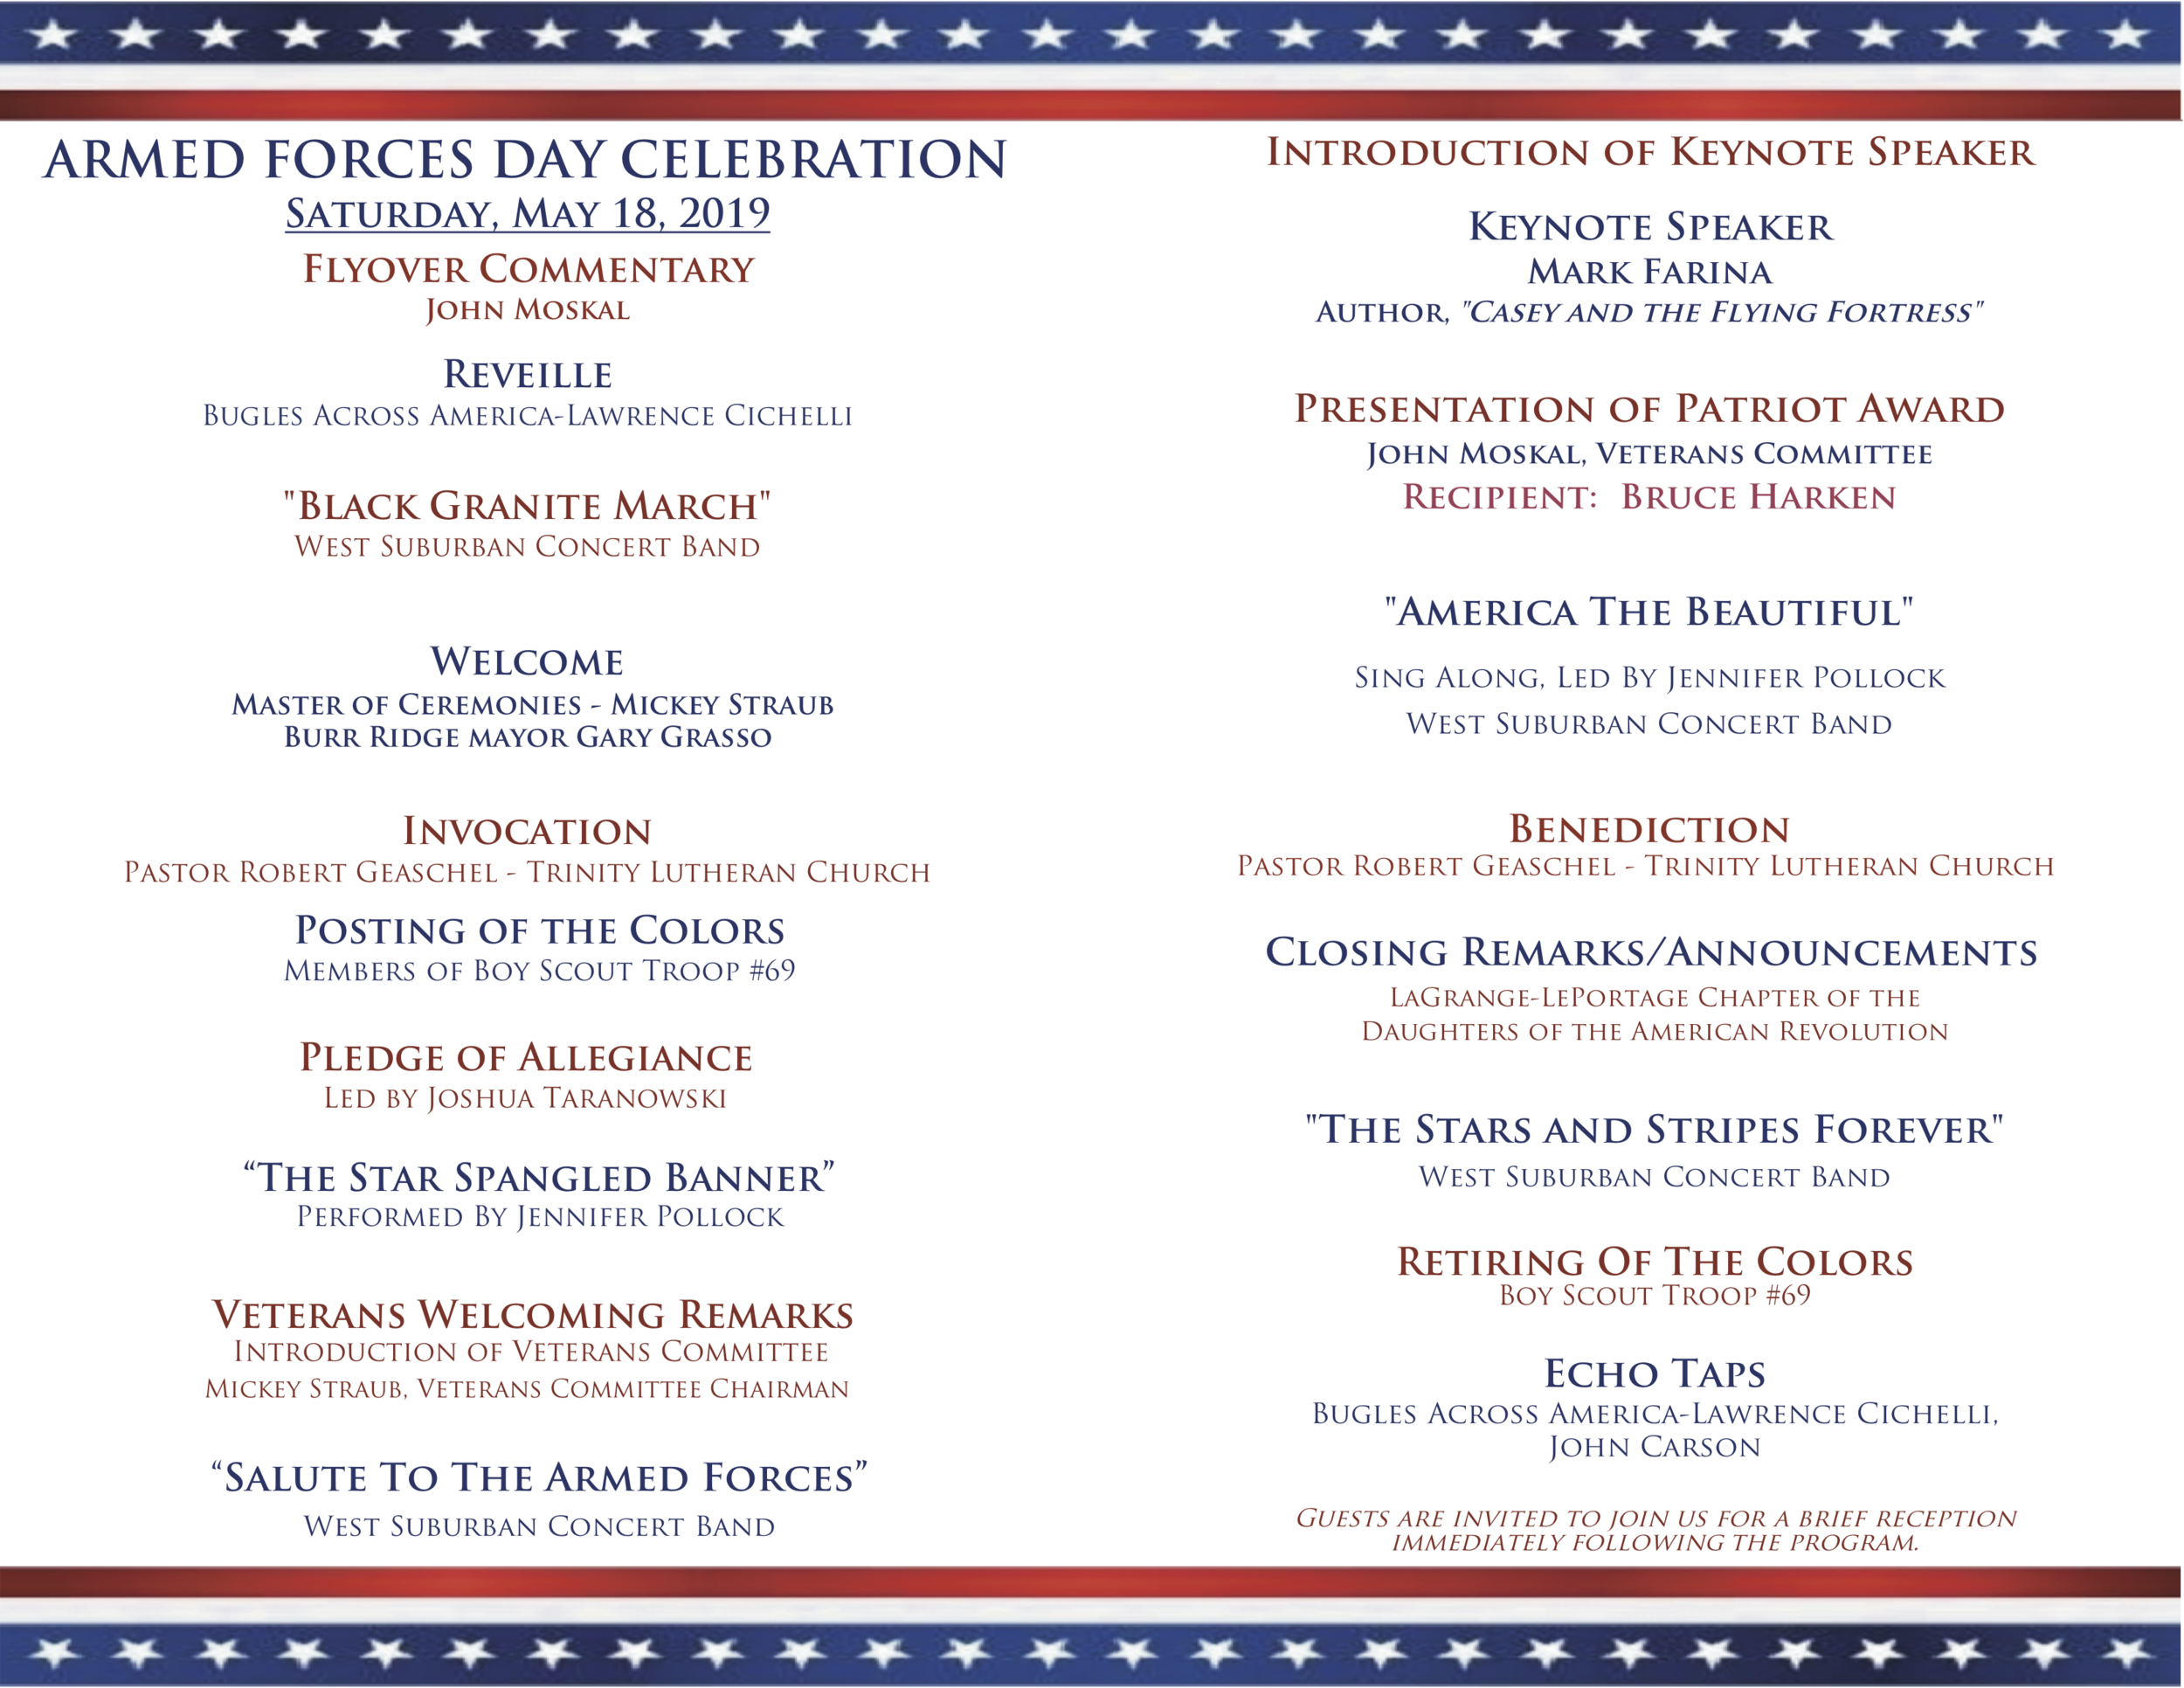 Armed Forces Day Program - Pages 23 -2019 new border.png